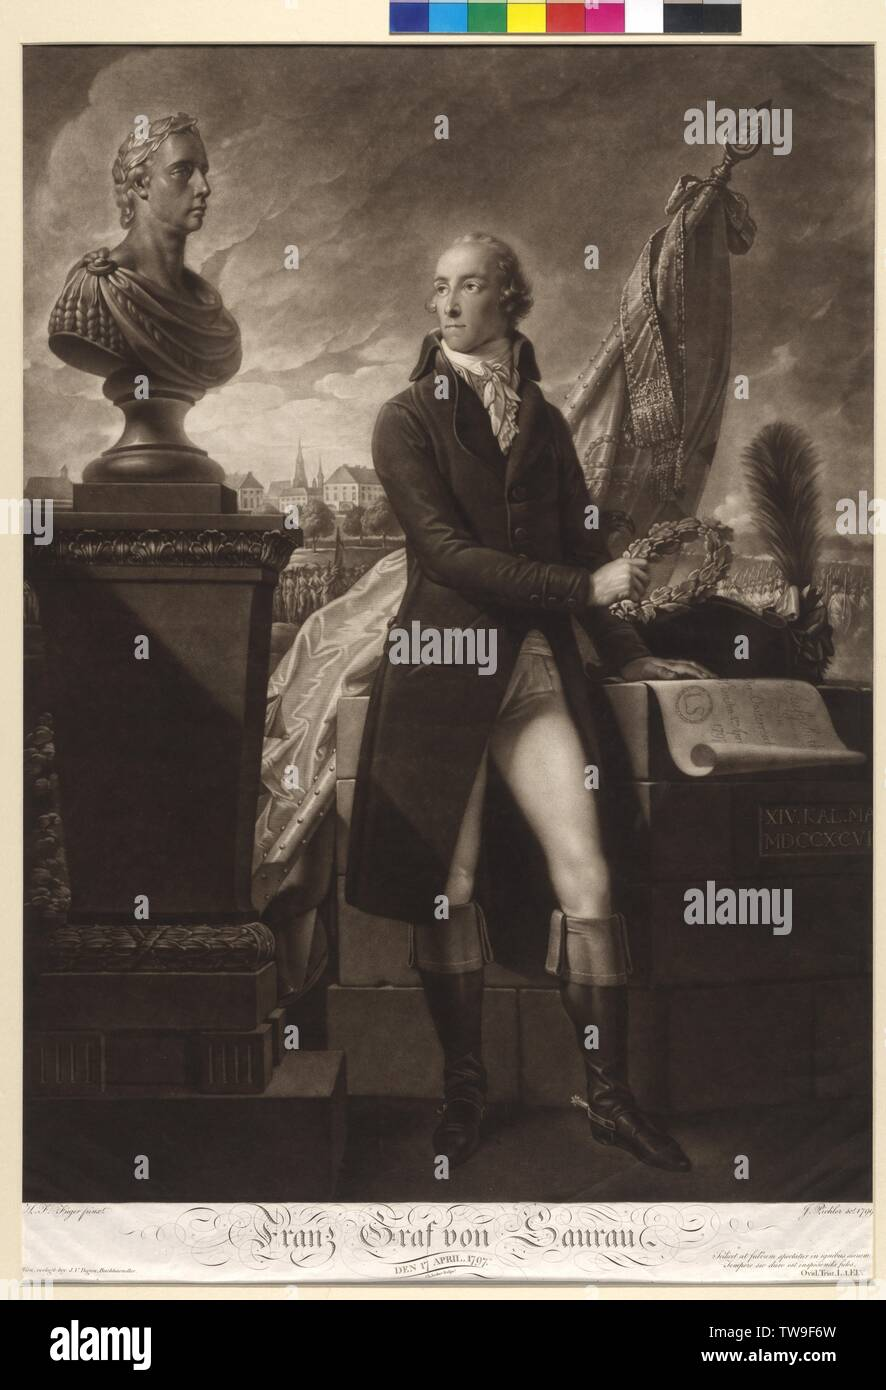 Franz count von Saurau, the 17th April, 1797, picture with laurel wreath and the cue to the education a public posse comitatus (4.4.1797), next to a bust of Emperor Franz II in the afterimage flag, troops and the Viennese inner city. mezzotint by Johann Peter Pichler based on a painting by Henry Frederick Fueger, script von Christian Junker, Additional-Rights-Clearance-Info-Not-Available Stock Photo